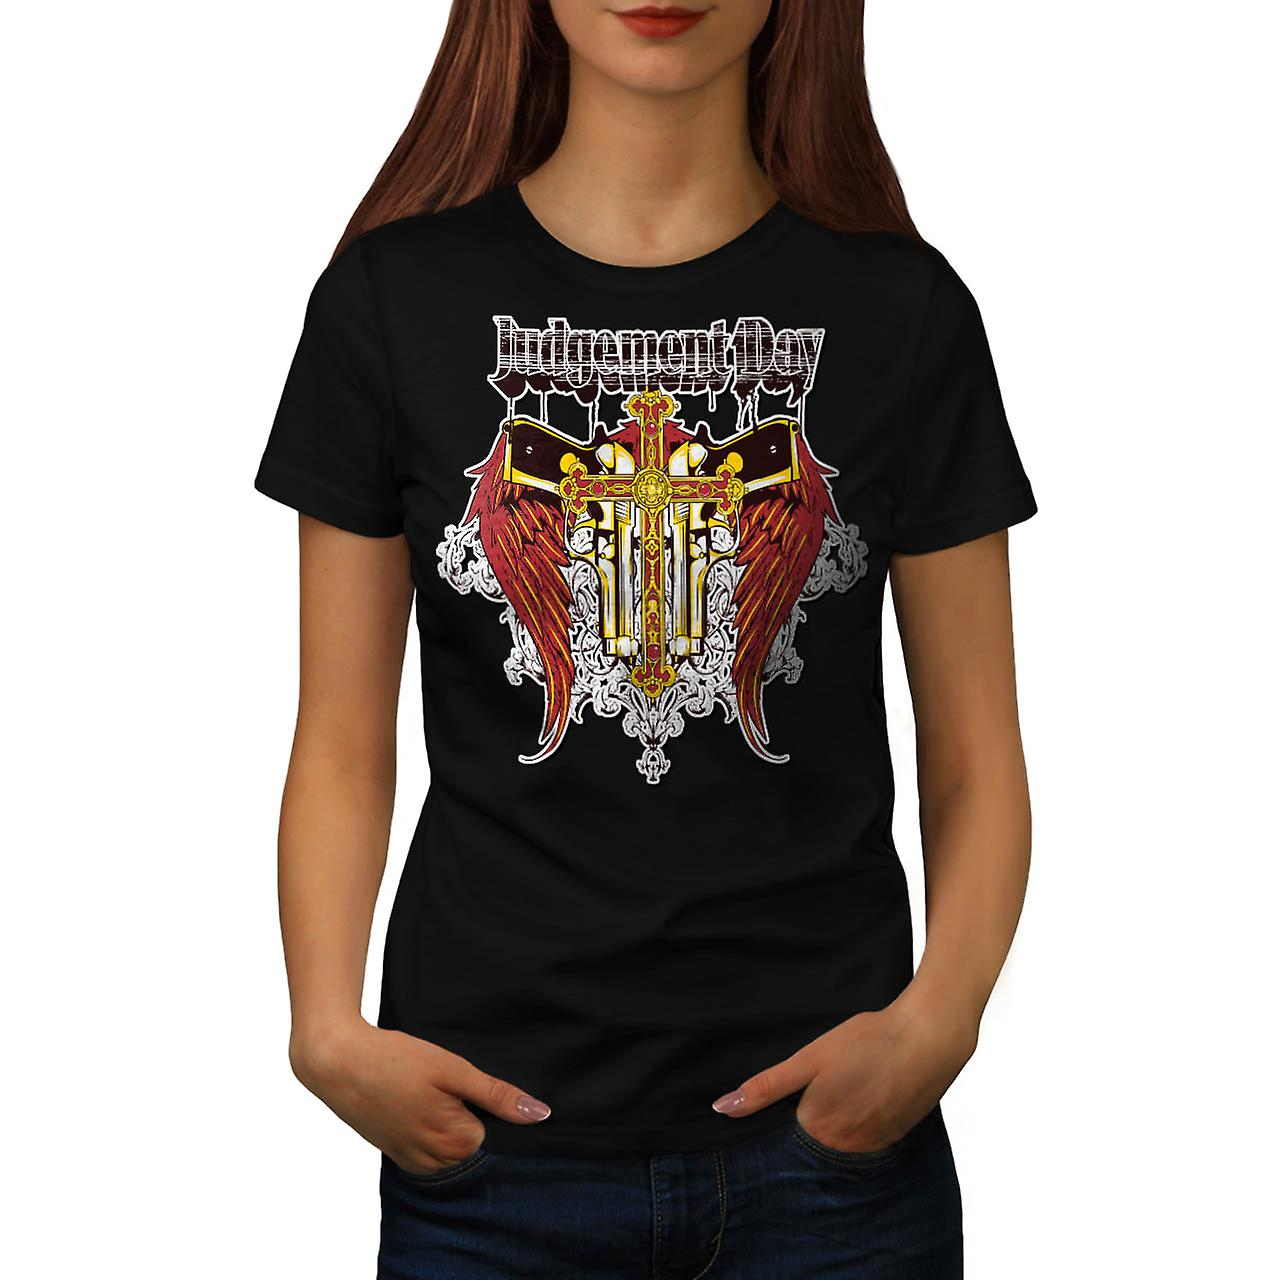 Judgement Day Hell Devils Lair Women Black T-shirt | Wellcoda